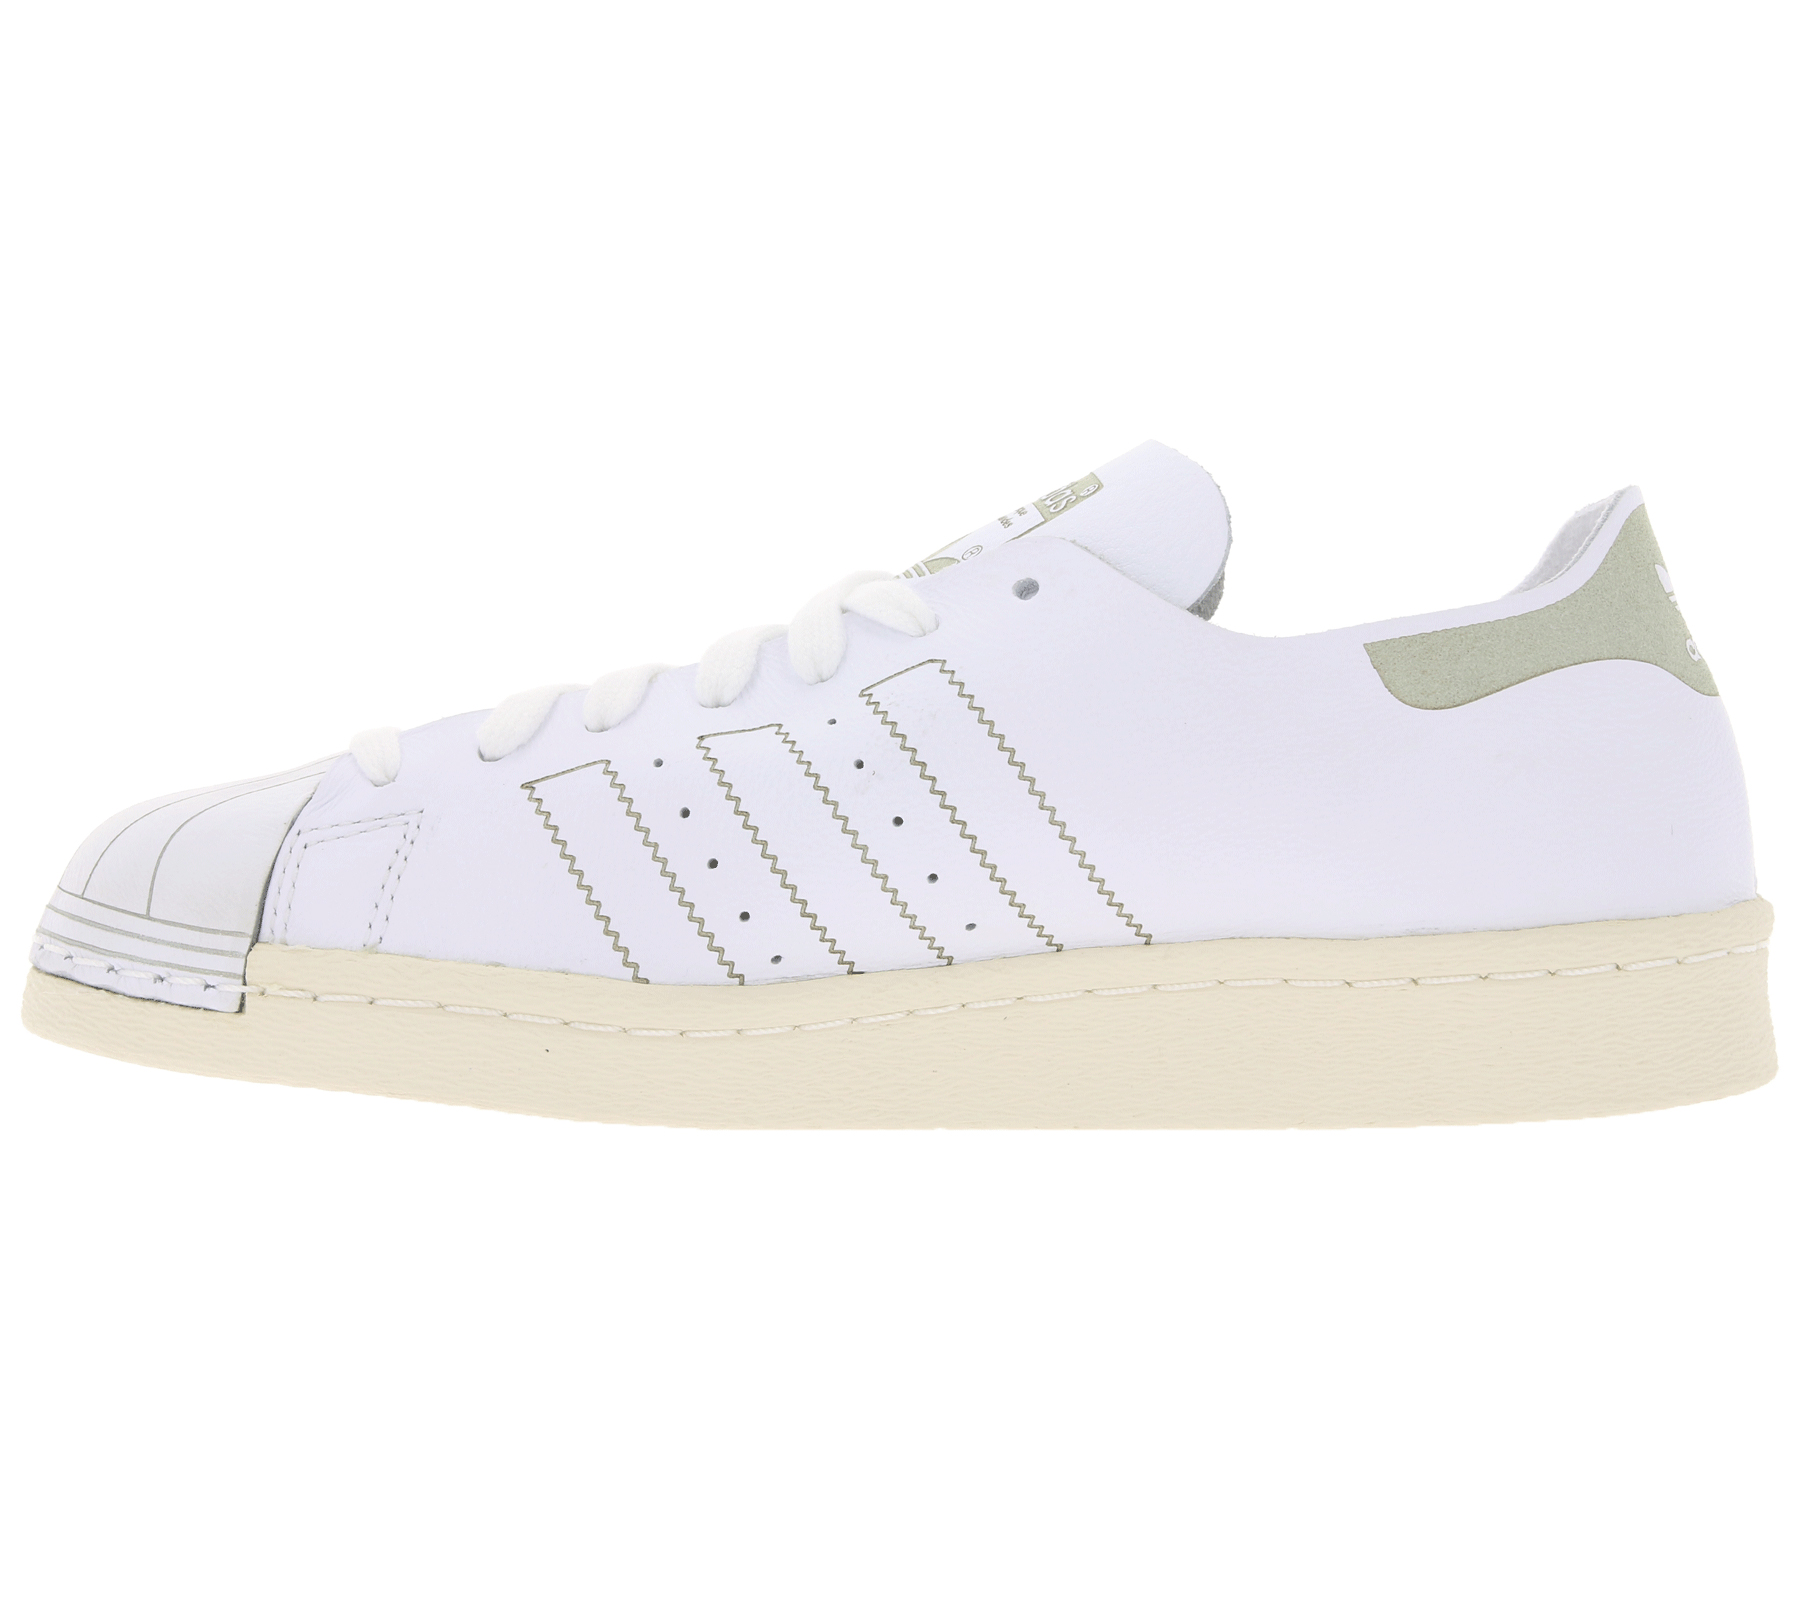 Details about Adidas Originals Womens Sneaker Superstar 80s Decon Cool  Shoes Sneakers White- show original title